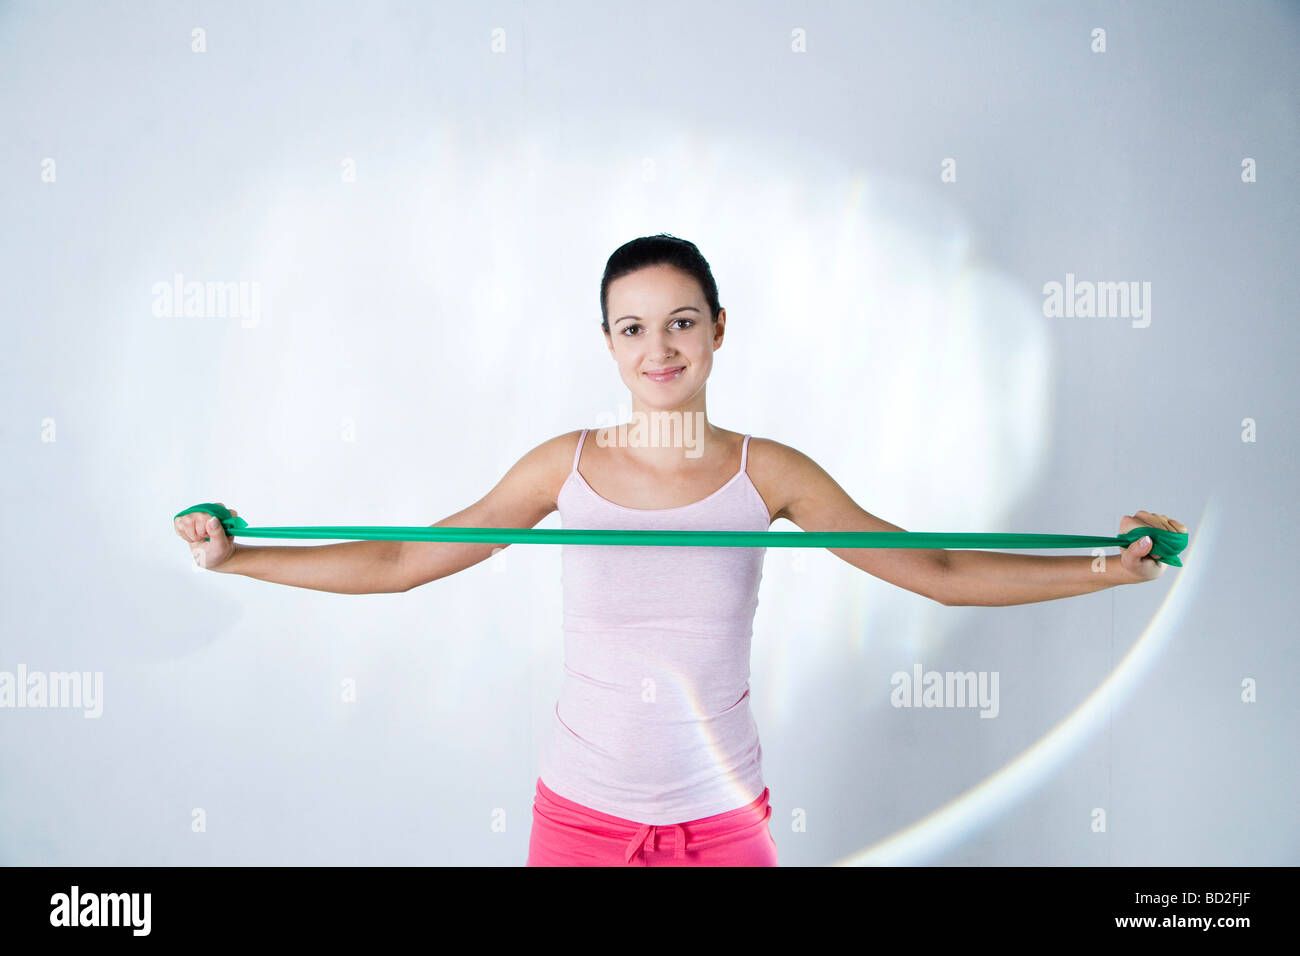 woman training with exercise band - Stock Image